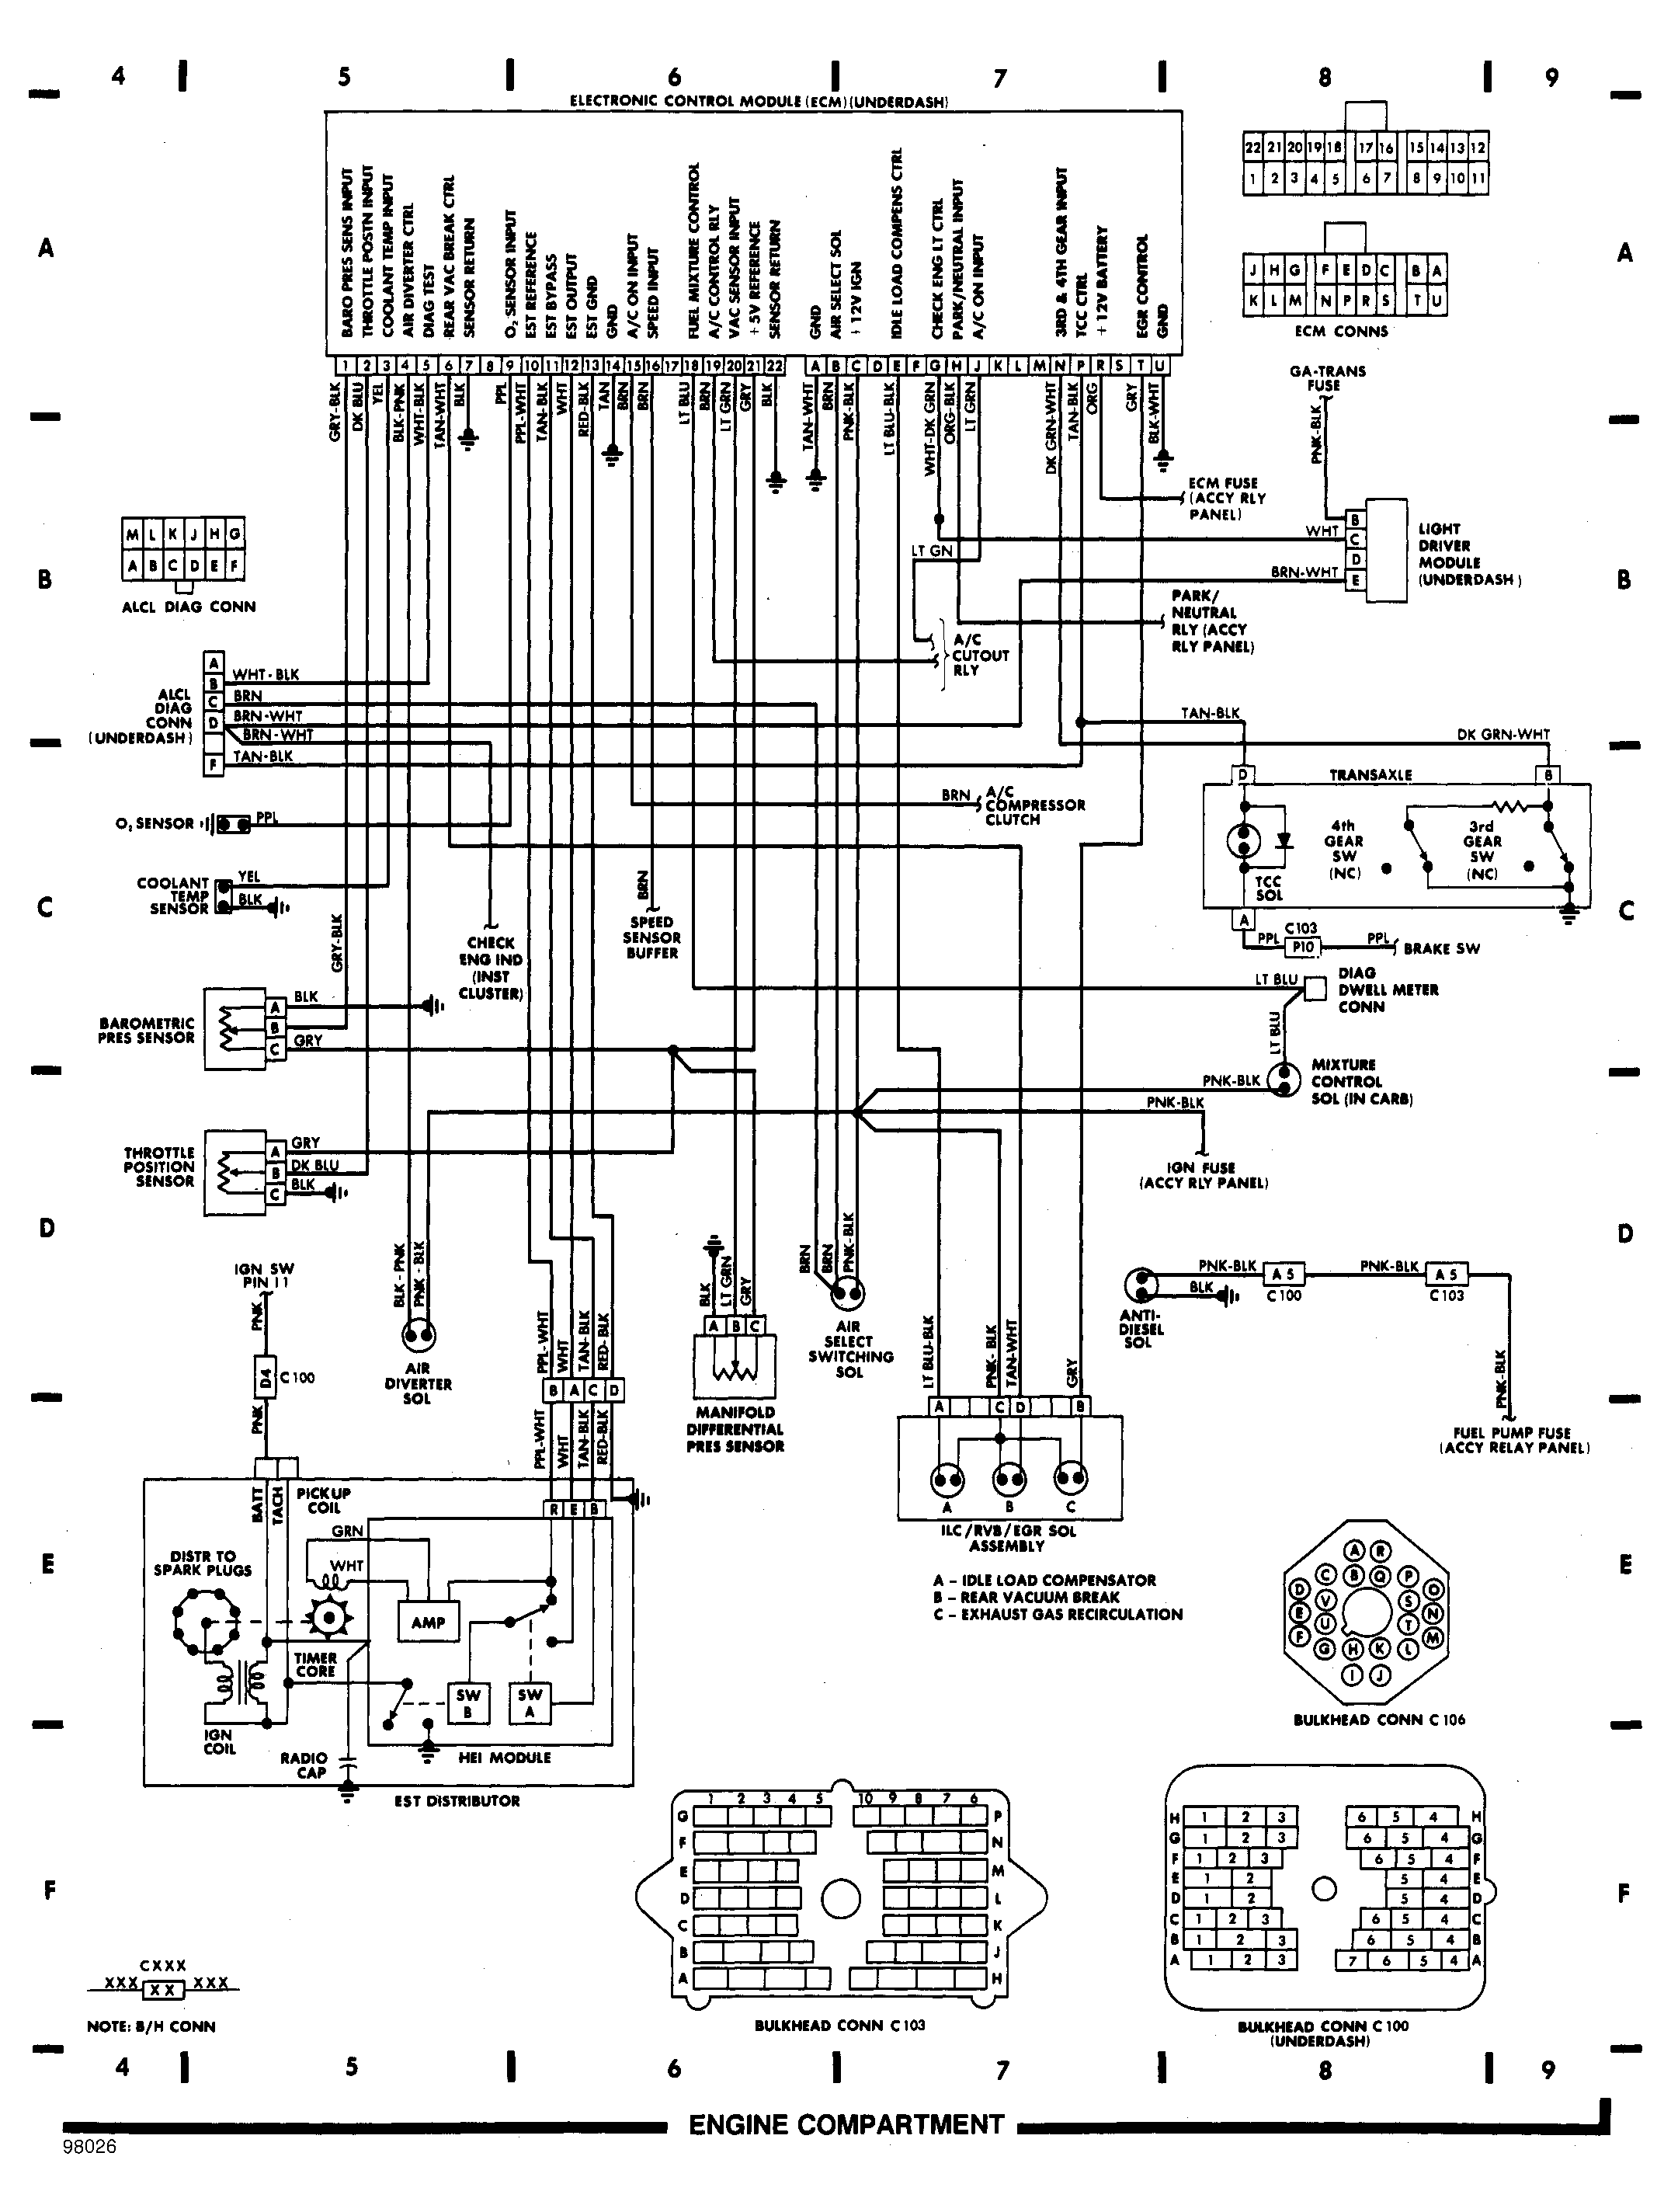 Wiring Diagram For Cadillac Fleetwood